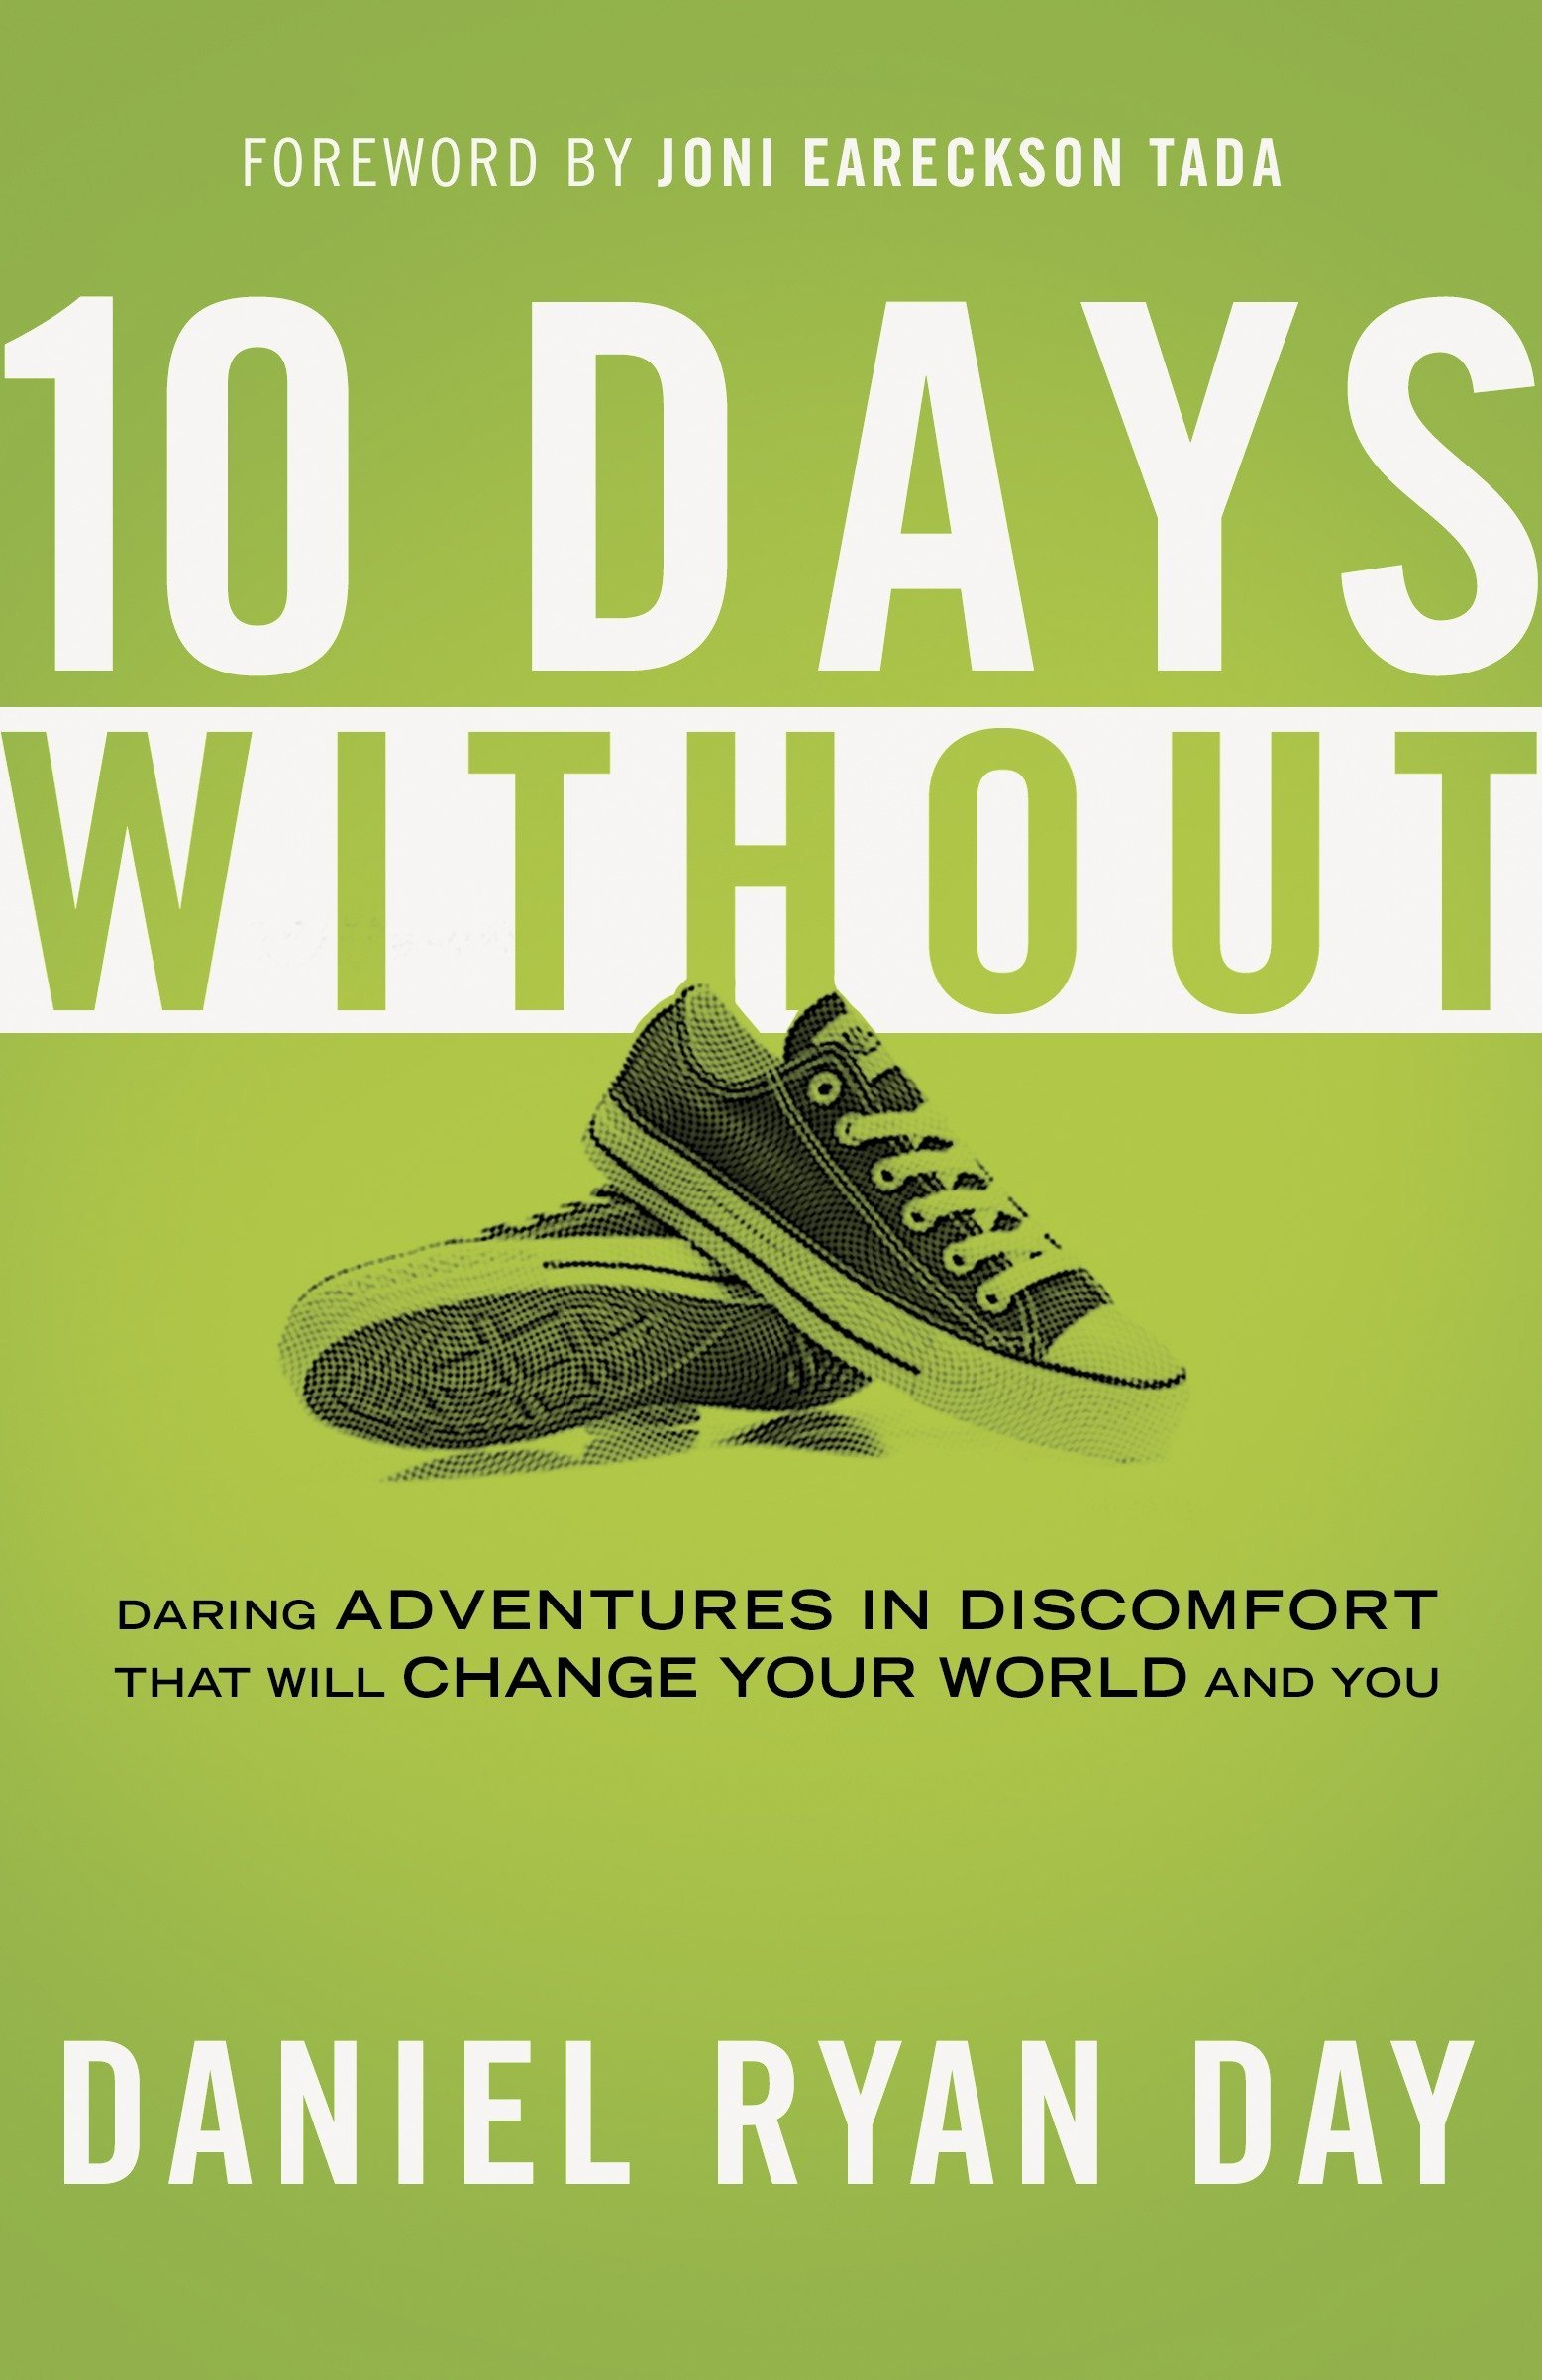 Ten Days Without: Daring Adventures in Discomfort That Will Change Your World and You pdf